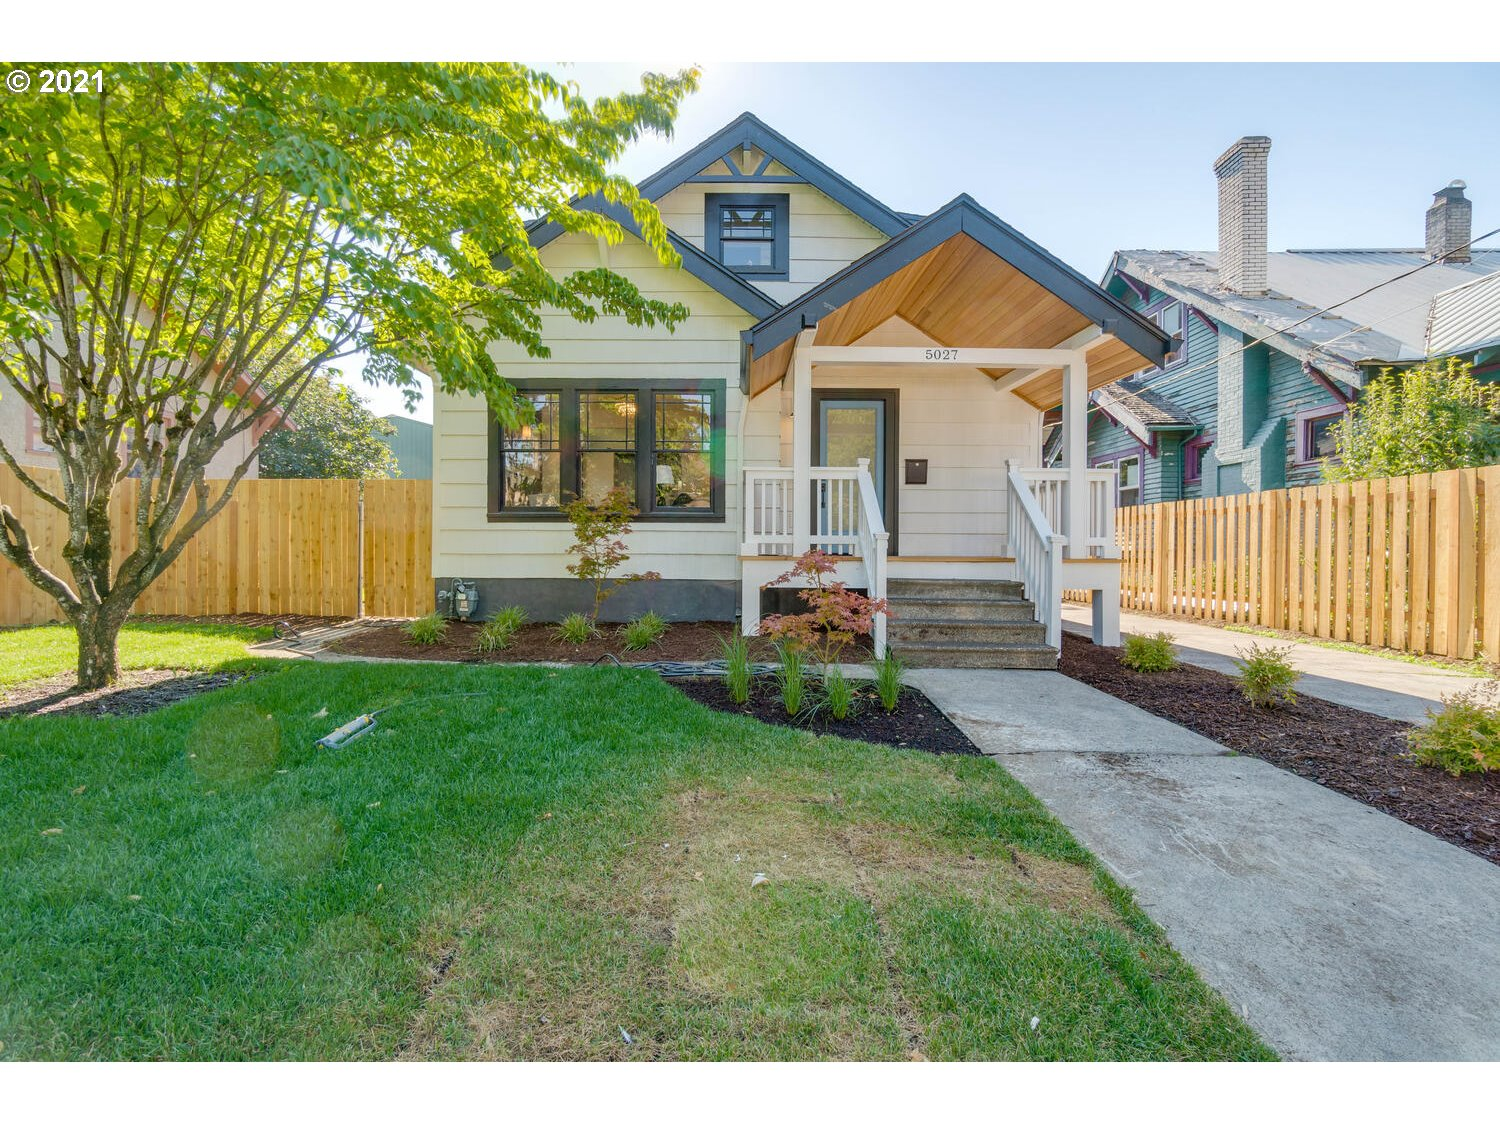 Renovated and revived! This stunning craftsman located in the desirable Alberta Arts District has been tastefully & thoughtfully brought back to life. This home features 3 beds, 2 baths, tall ceilings, hardwoods, stainless steel appliances, second-level primary suite, and a spacious backyard w new garage. A walkers and bikers dream and near local hotspots on Alberta St, award-winning restaurants, popular shops & public transit.